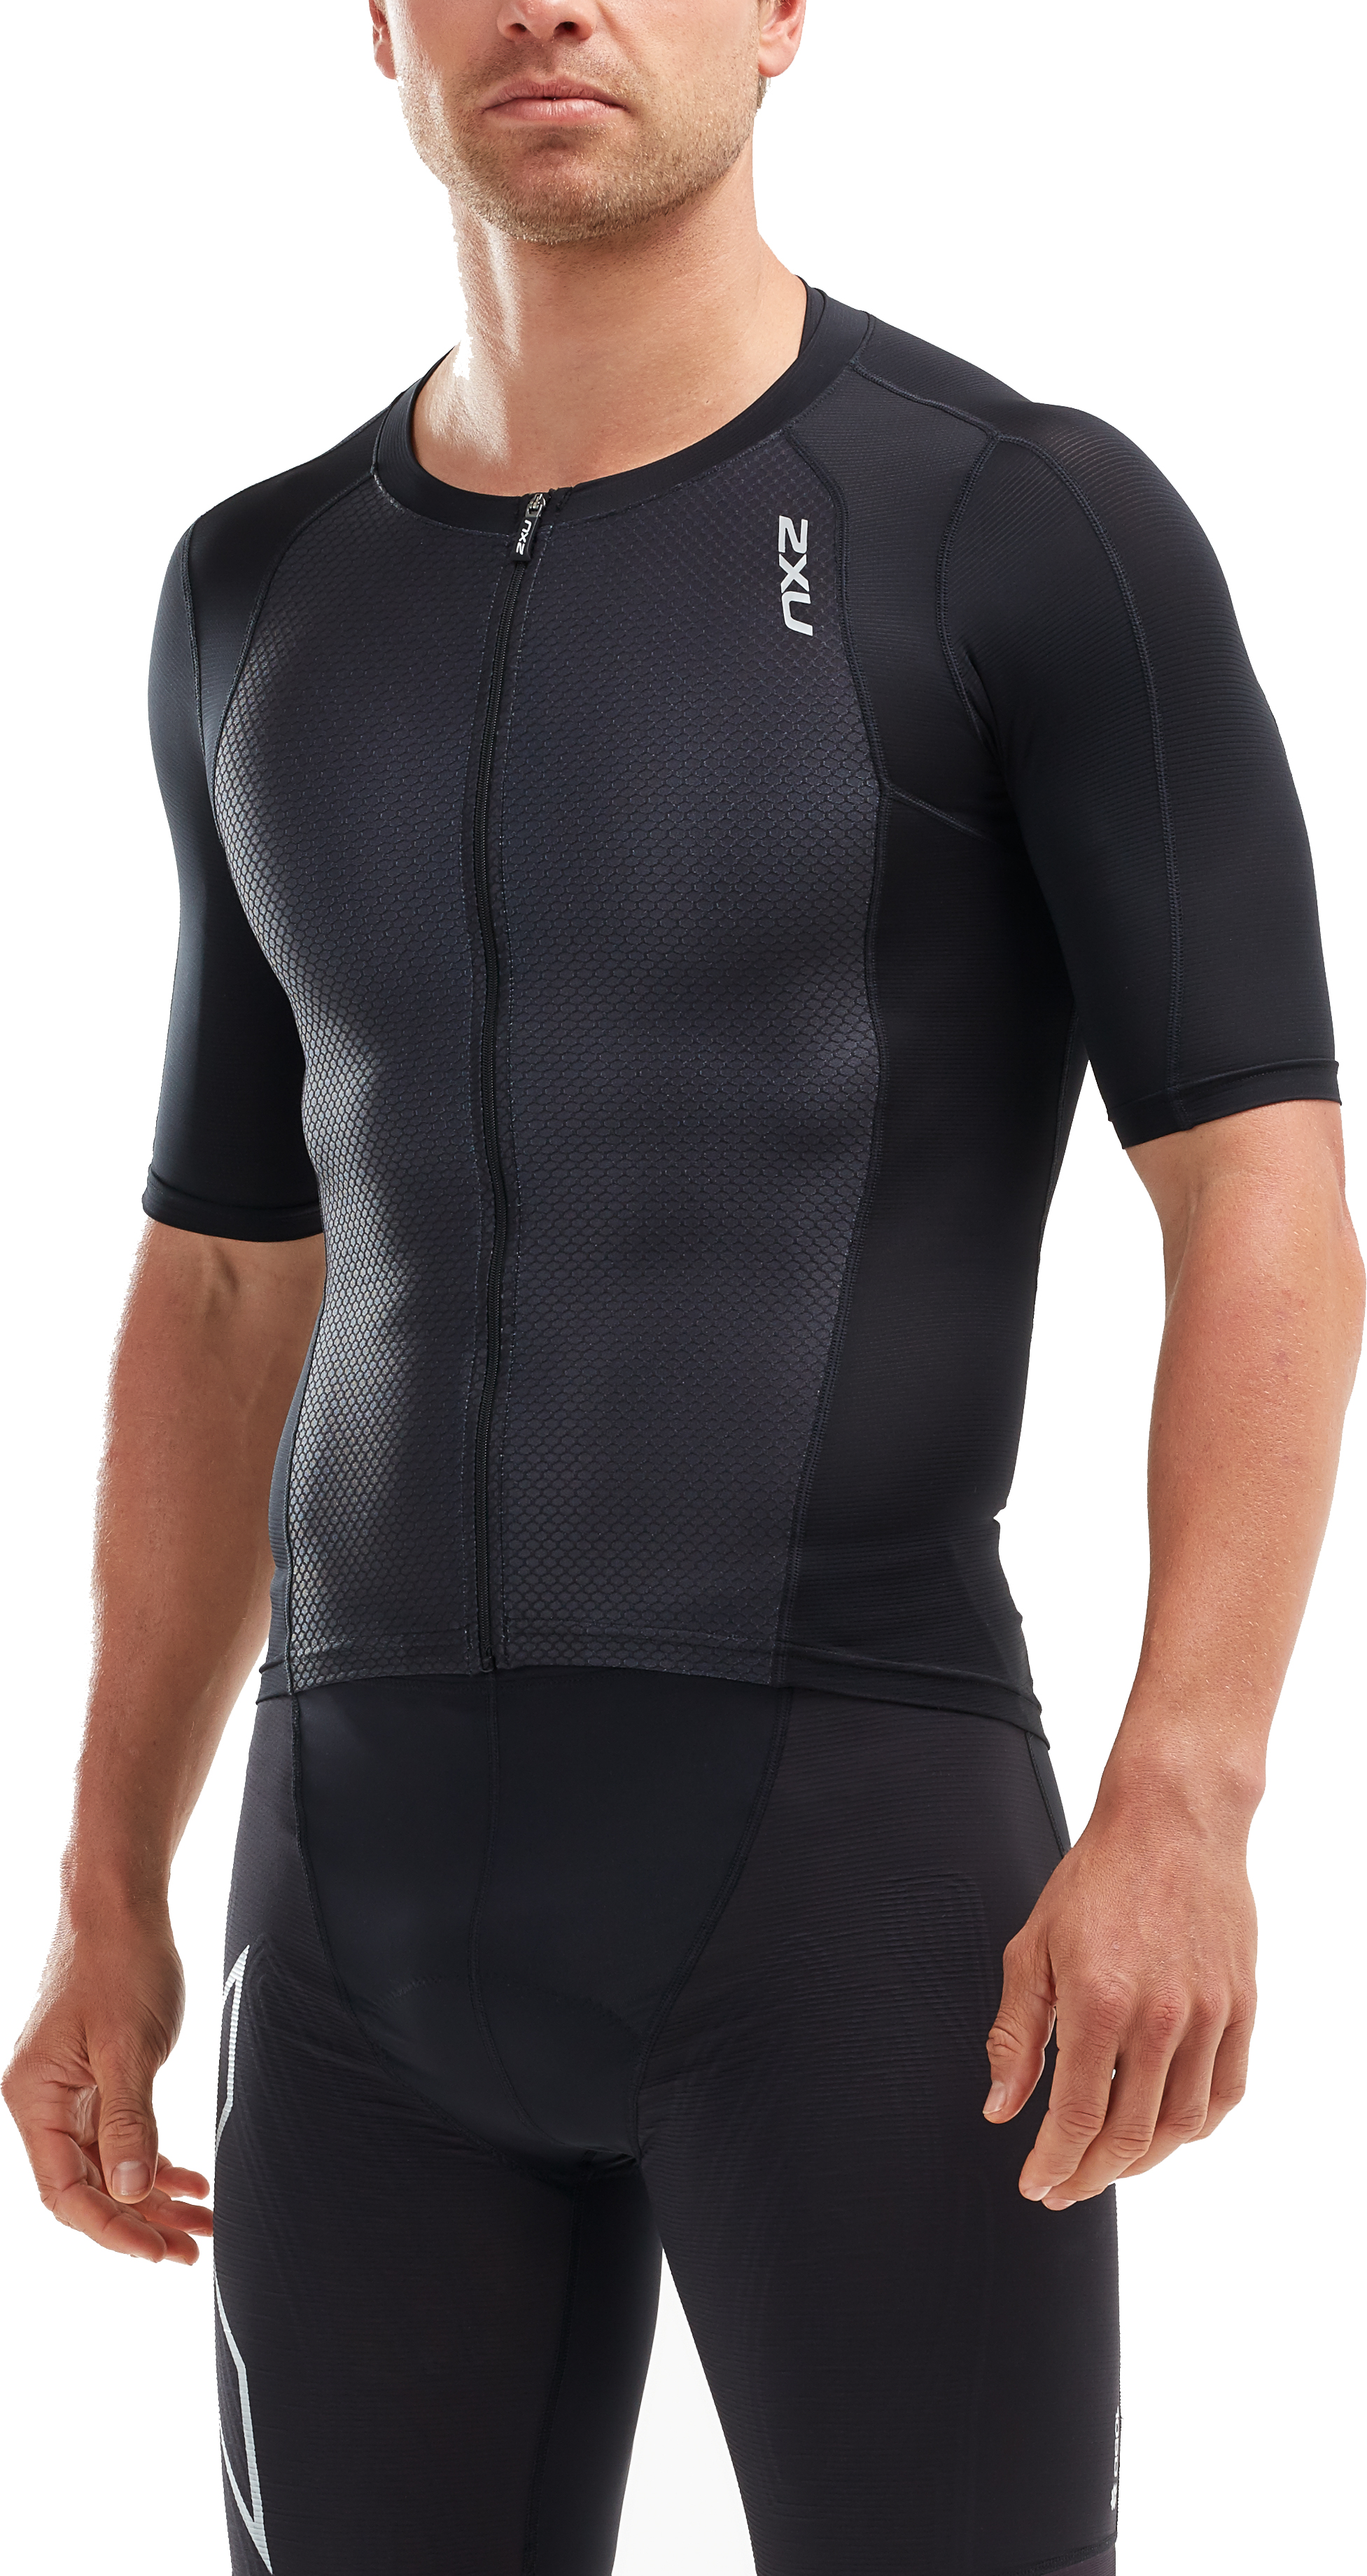 2XU Compression Sleeved Top | Compression